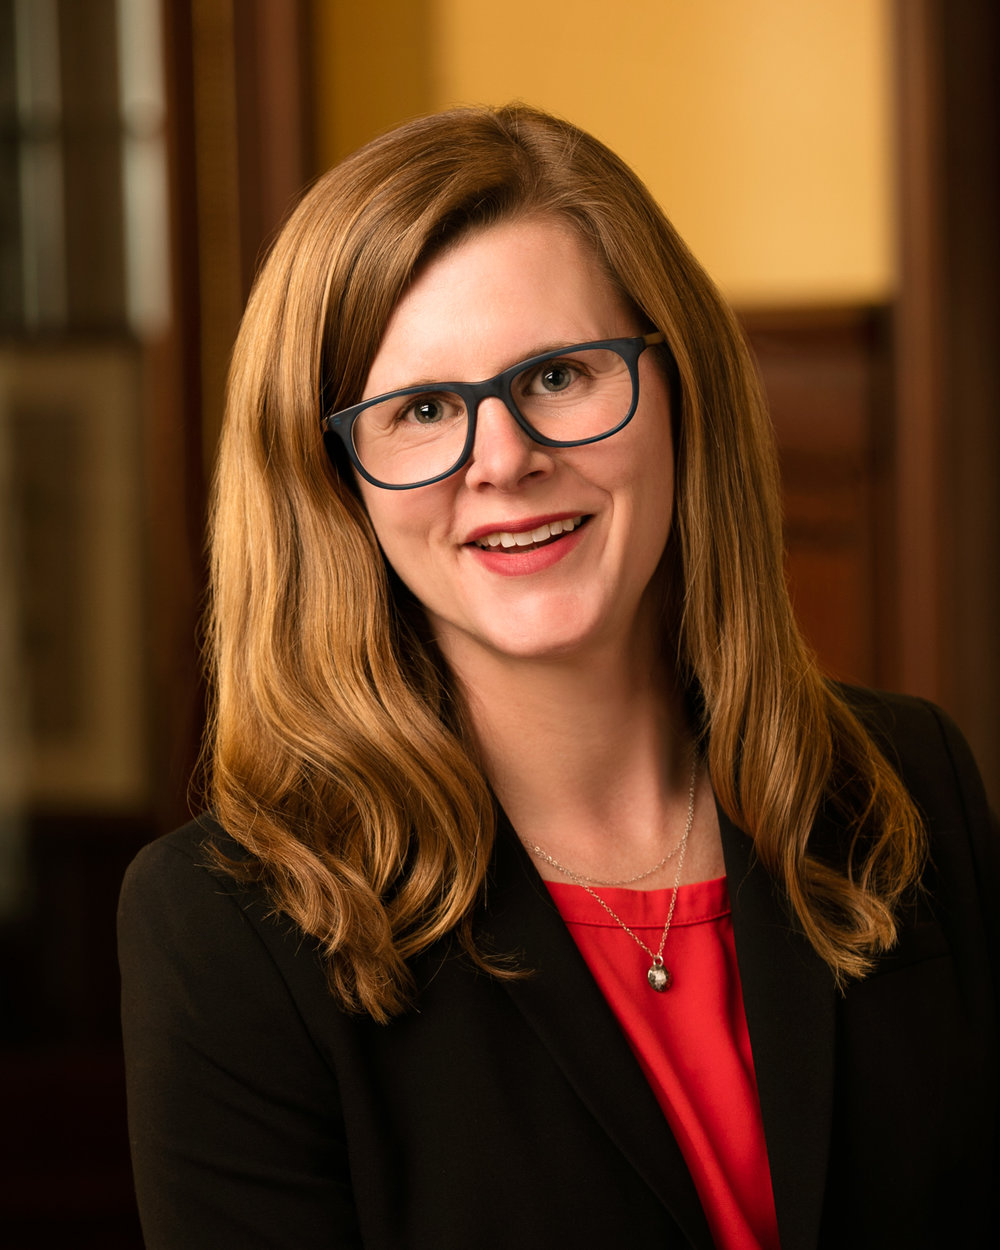 Morgan Lyon Cotti, PhD, Associate Director Morgan joined the Hinckley Institute in May 2012 as Local Program Manager, after serving as Research Director for the Utah Foundation. She oversees local and legislative internships. morgan.lyoncotti@utah.edu